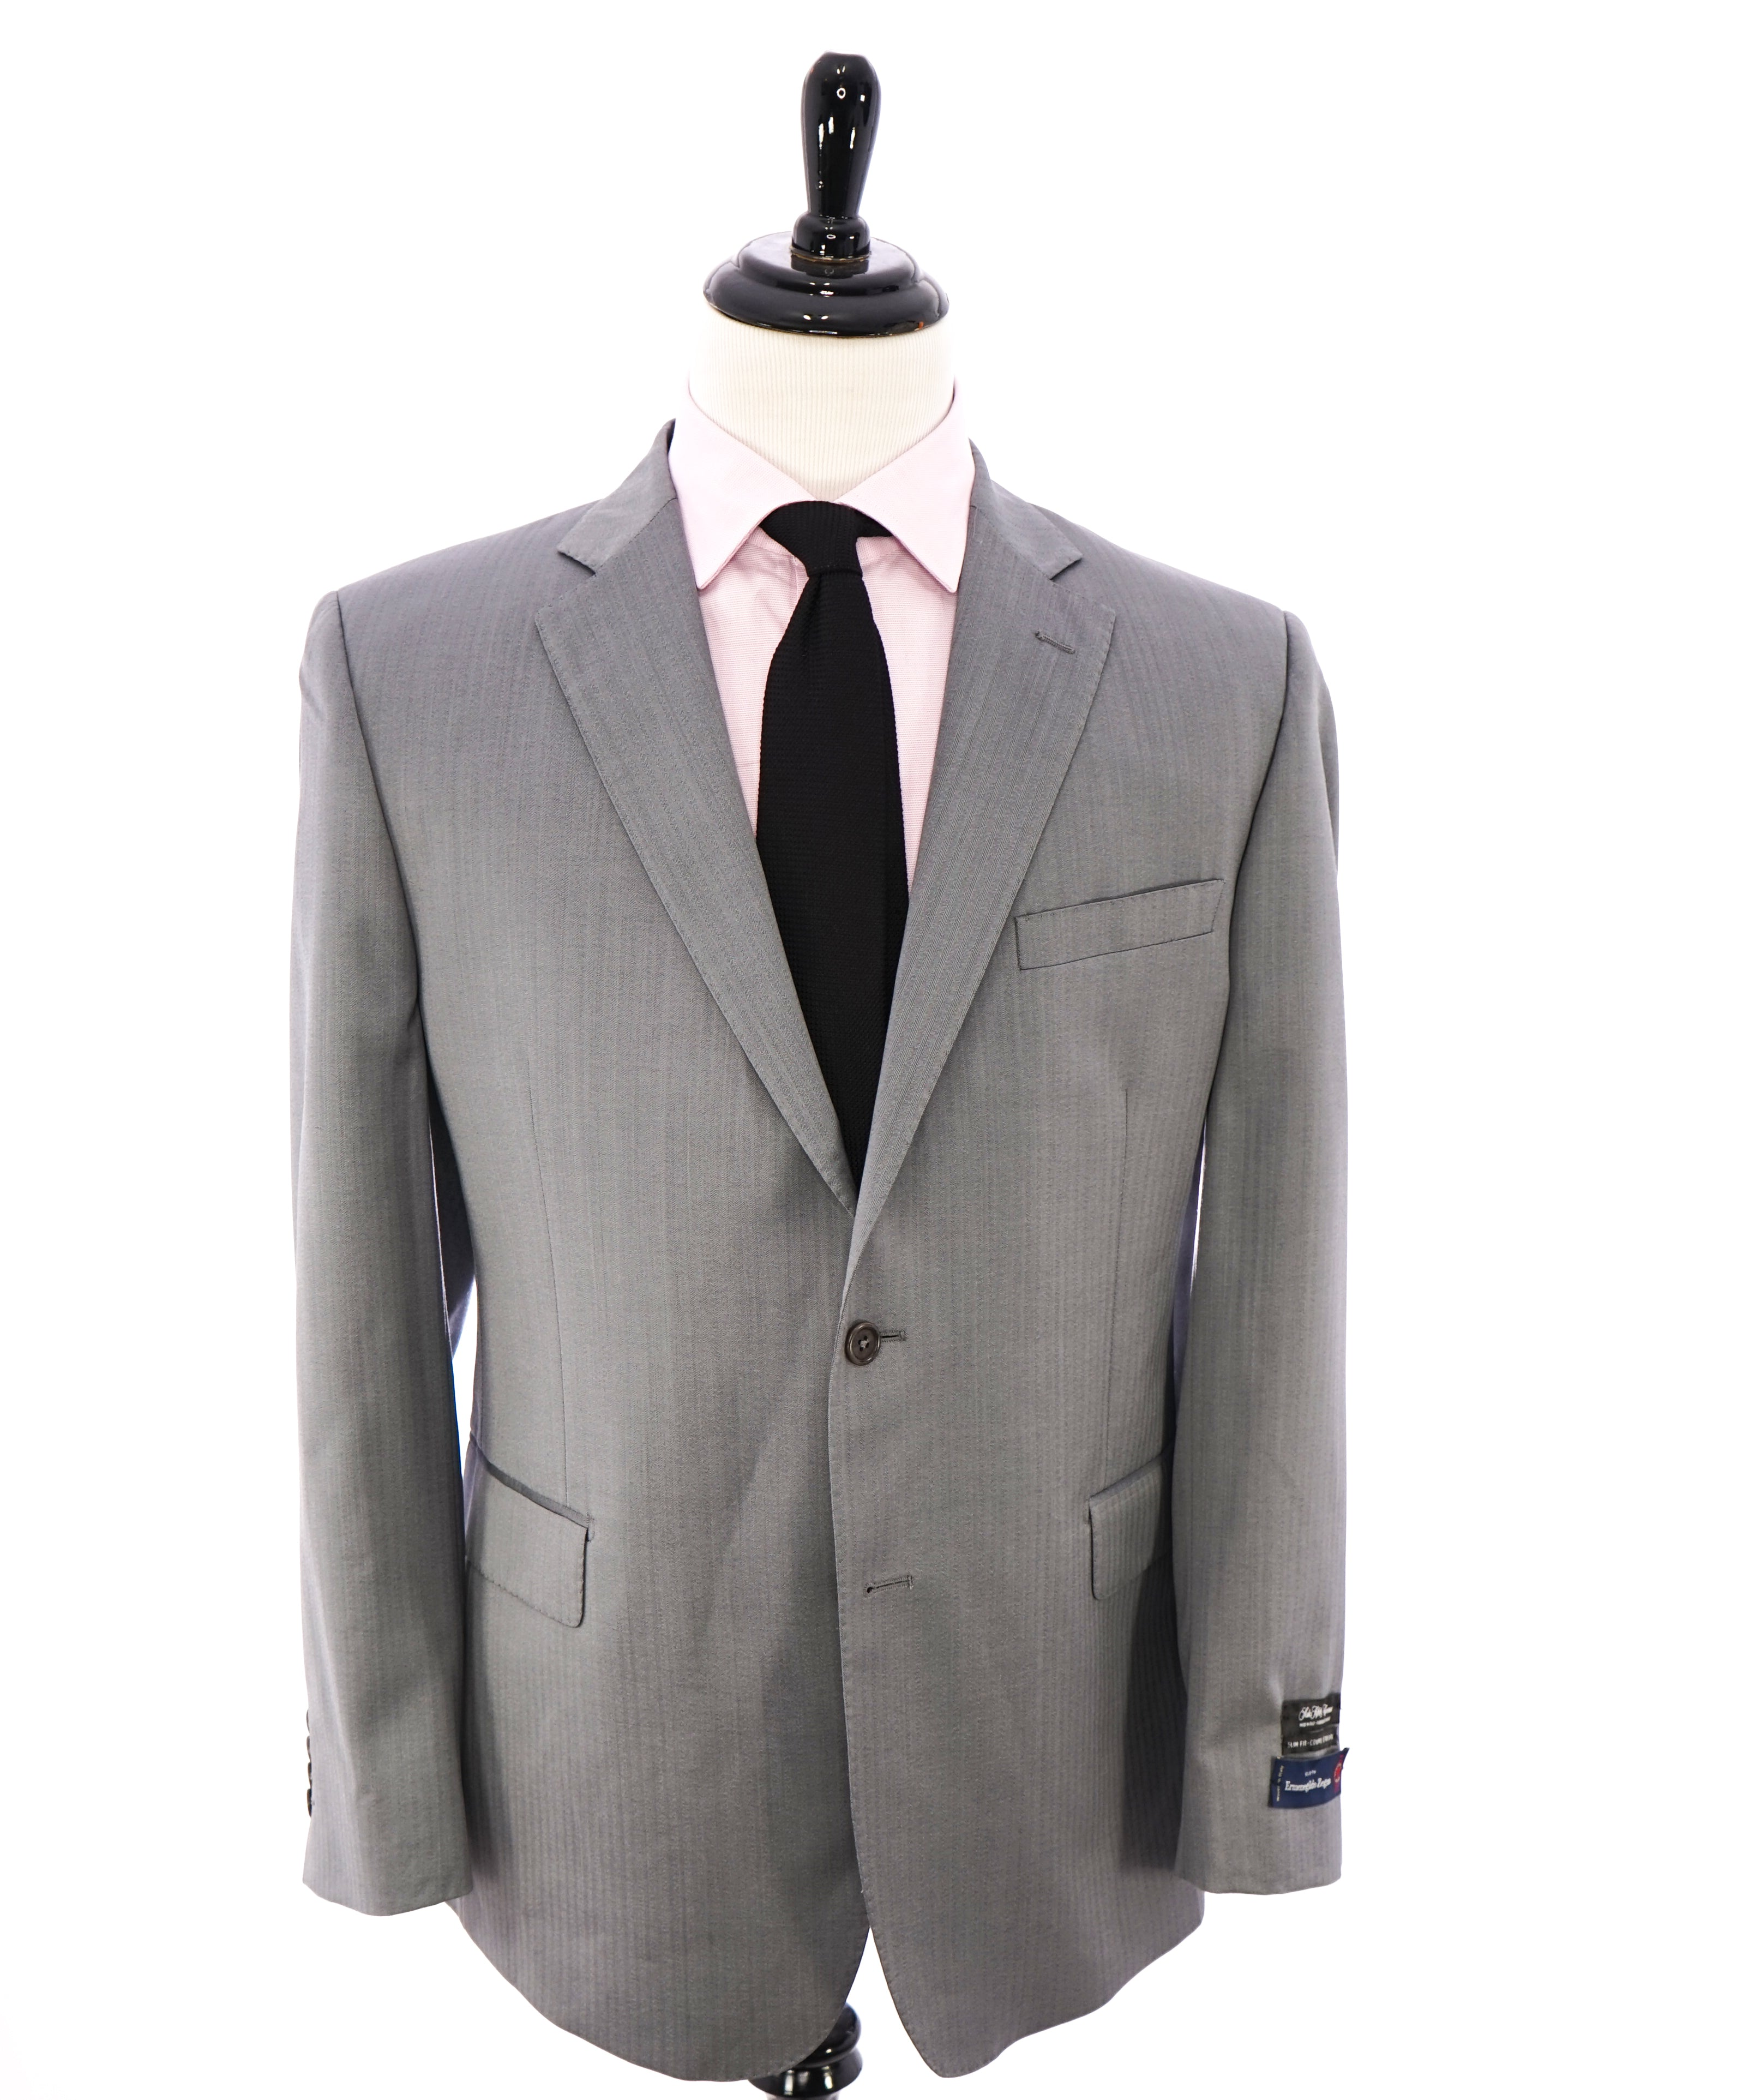 SAKS FIFTH AVENUE / ERMENEGILDO ZEGNA- Slim Fit Gray Herringbone Blazer- 44R